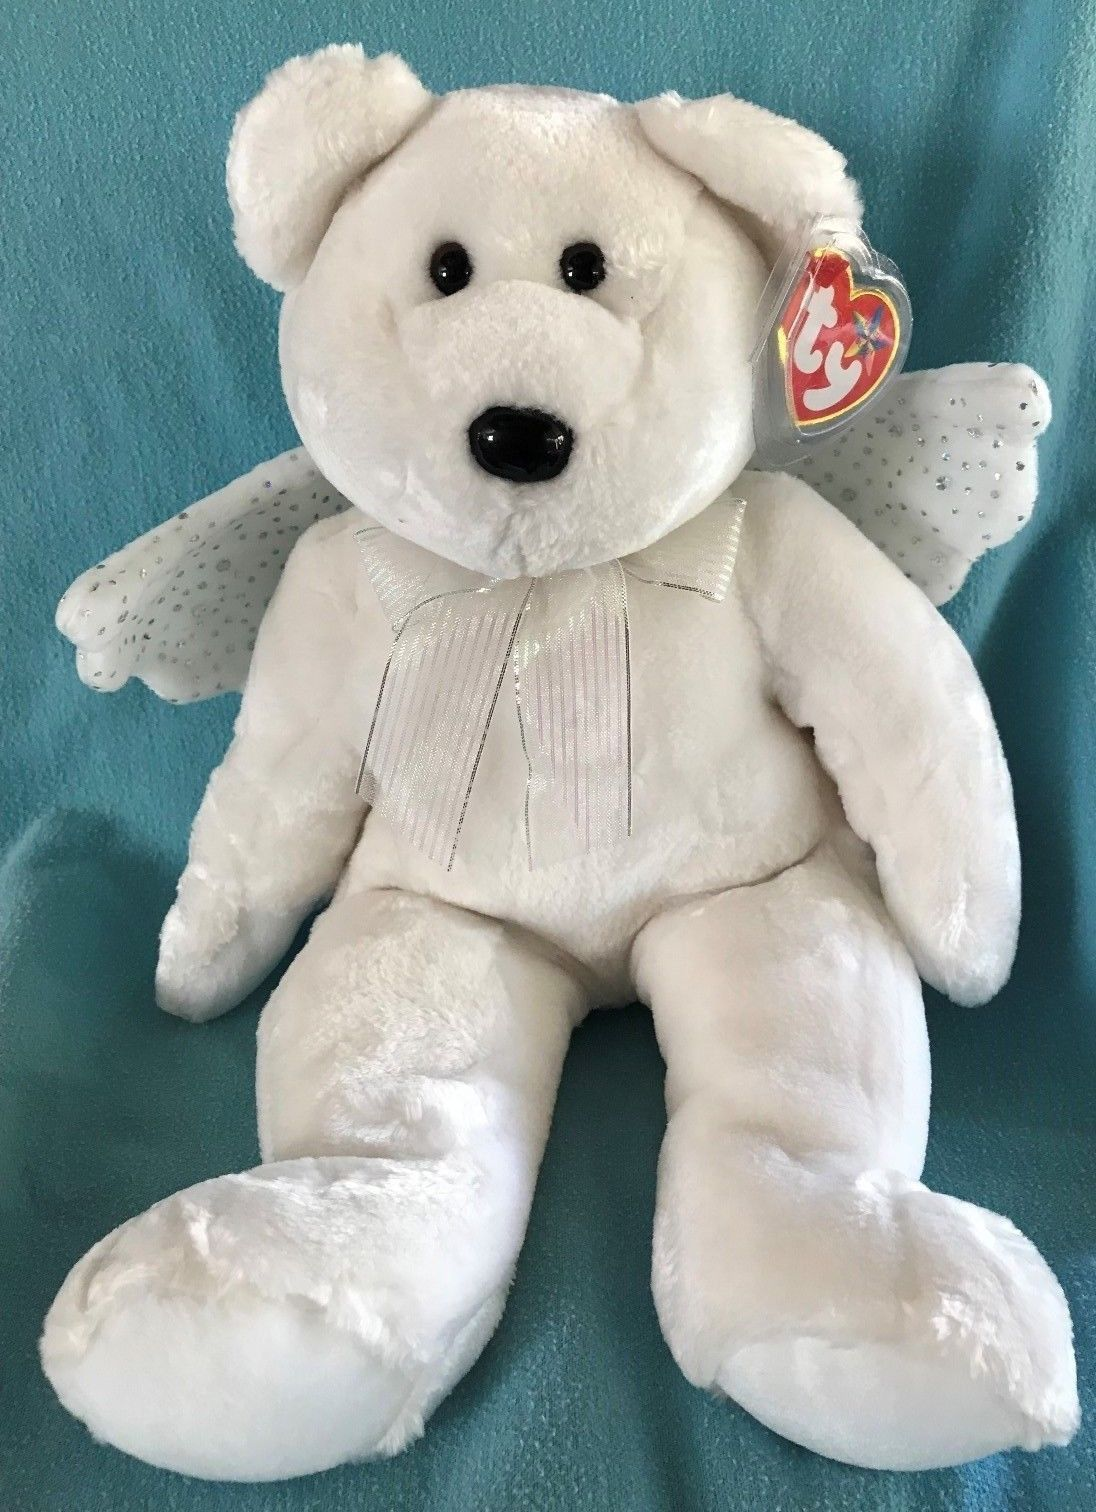 TY Beanie Buddy HERALD the Angel Bear 14 MWMT Vintage Stuffed Animal 2003 b428207590bc